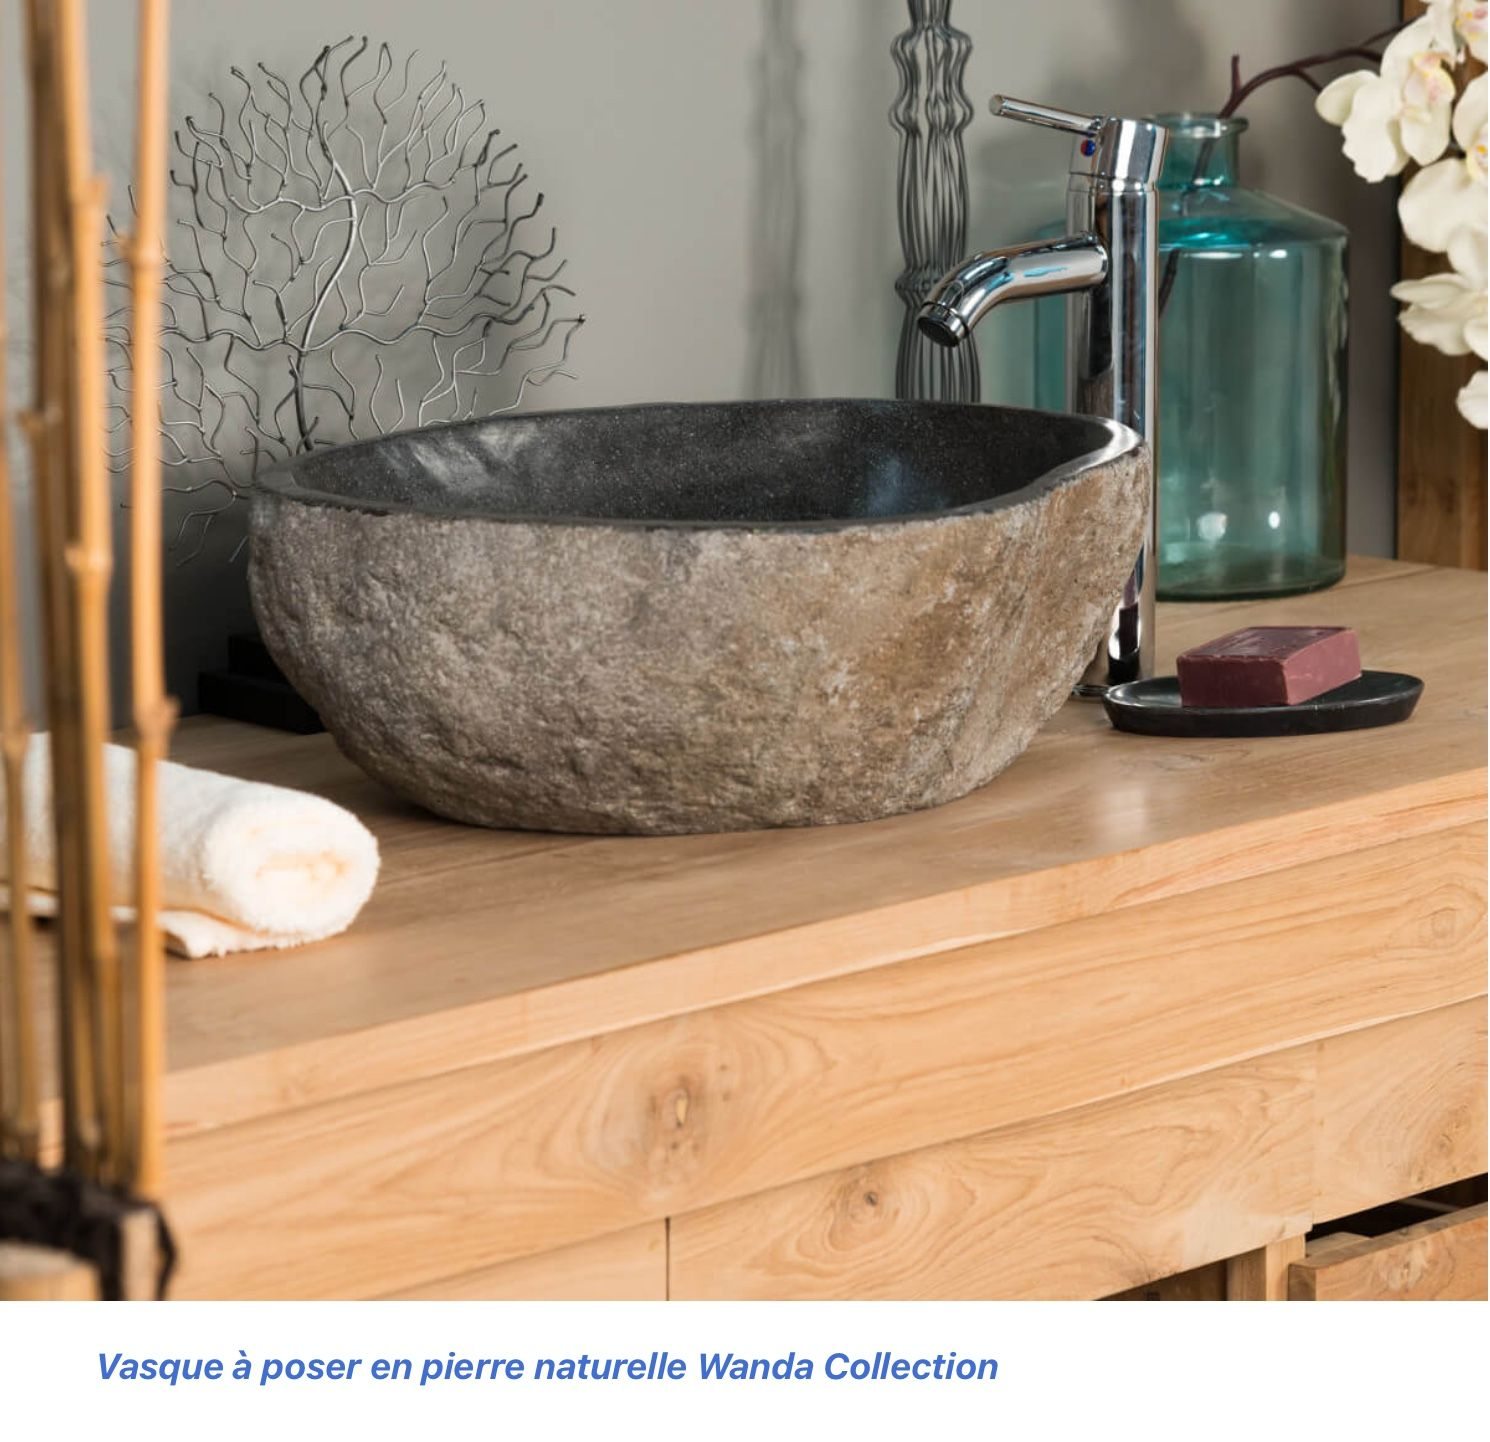 Wanda Collection Design La Maison